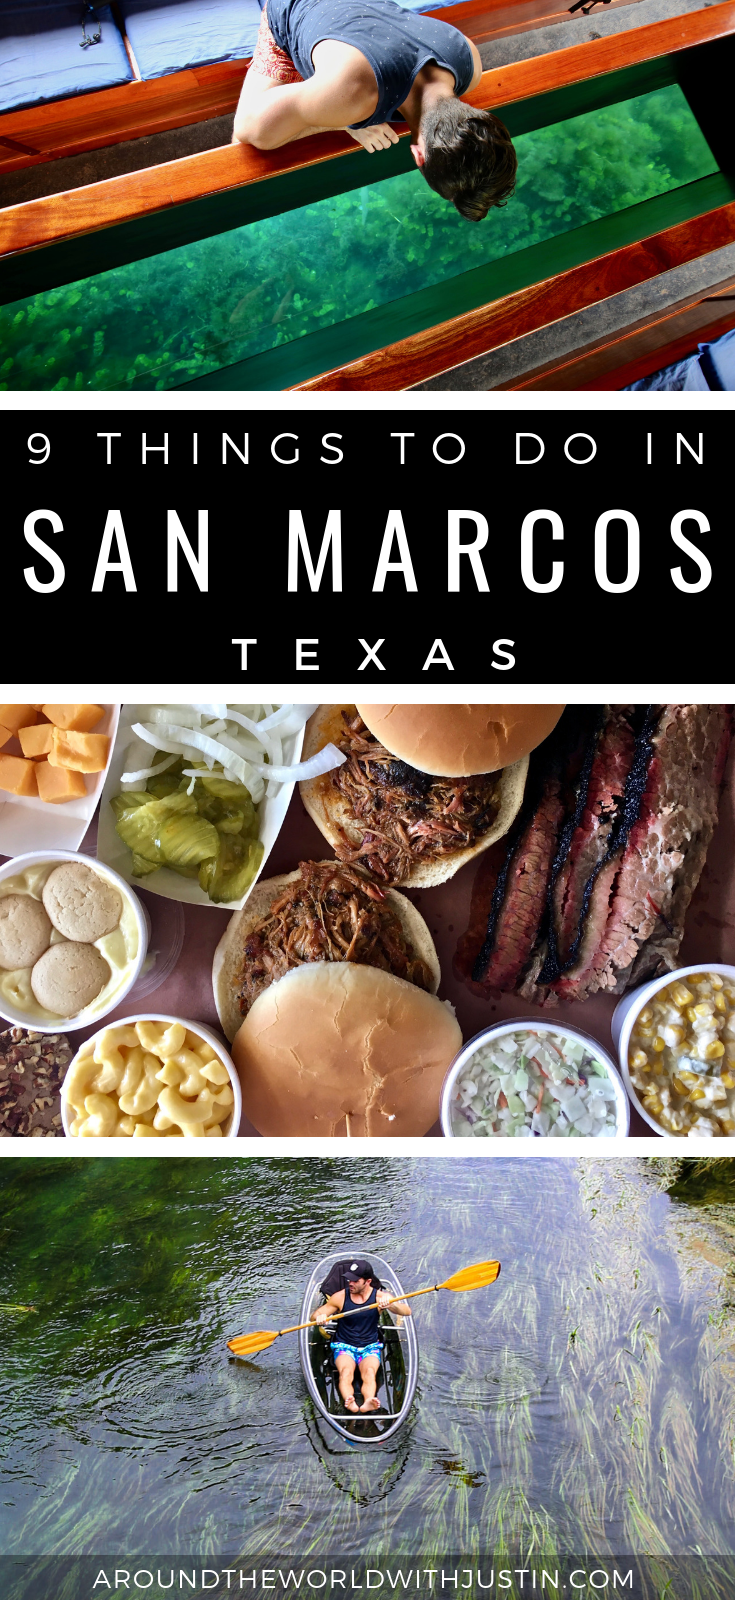 Things to do in San Marcos TX